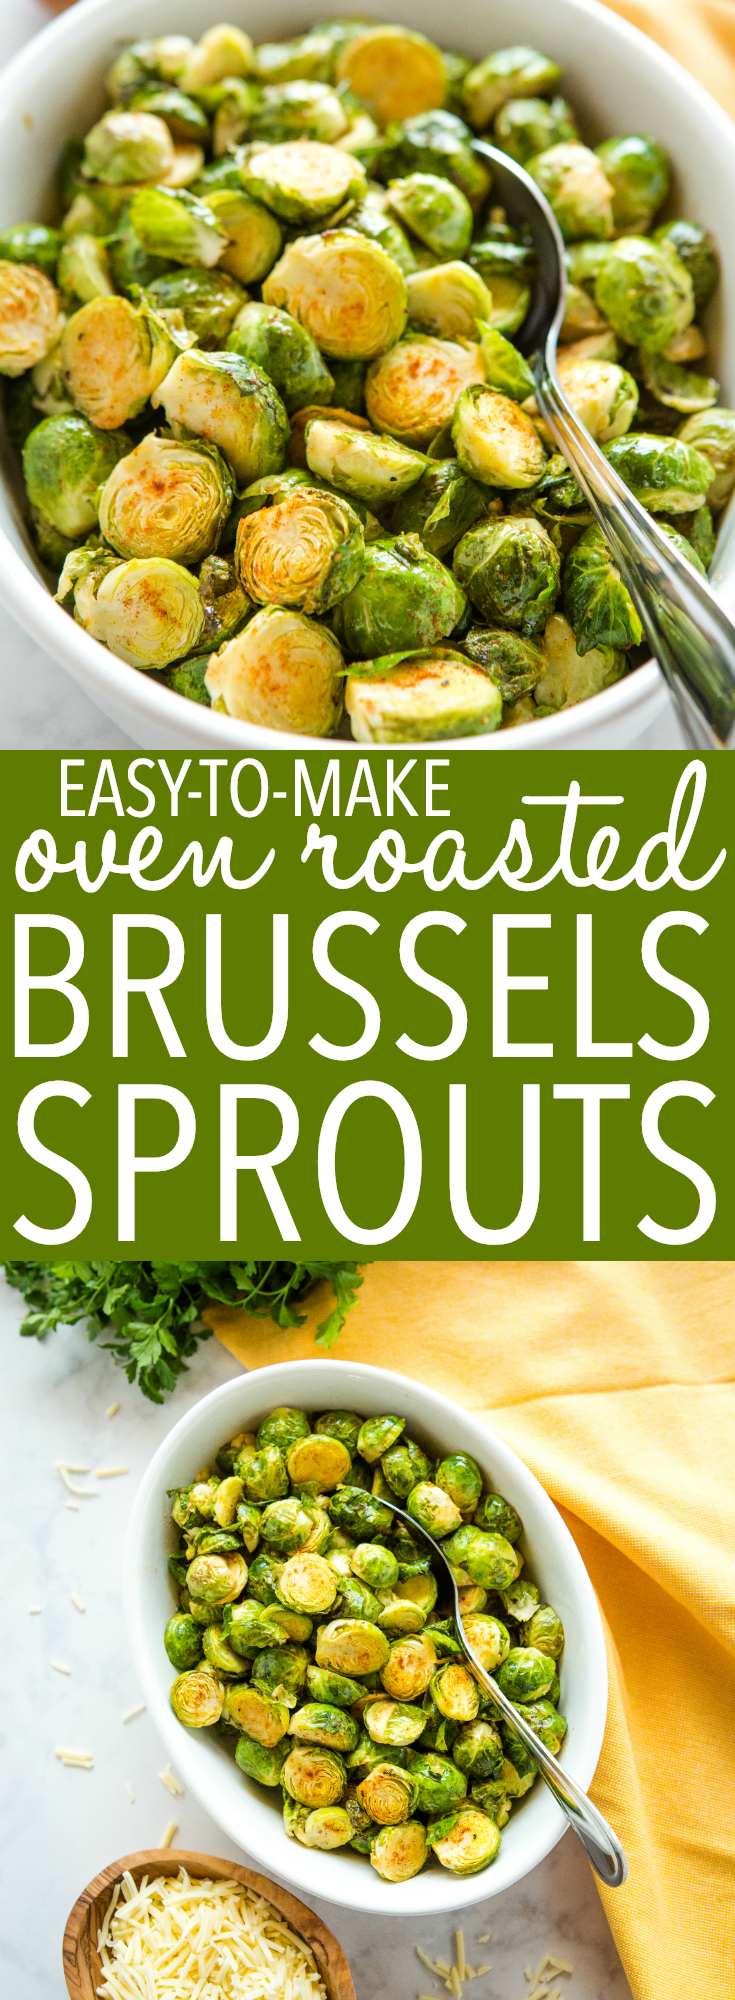 These Easy Oven Roasted Brussels Sprouts are the perfect easy and healthy side dish that's on the table in under 30 minutes and perfect for the holidays! Recipe from thebusybaker.ca! #brusselssprouts #easter #holidays #sidedish #veggies #vegetables #vegetarian #greens #healthy #health via @busybakerblog